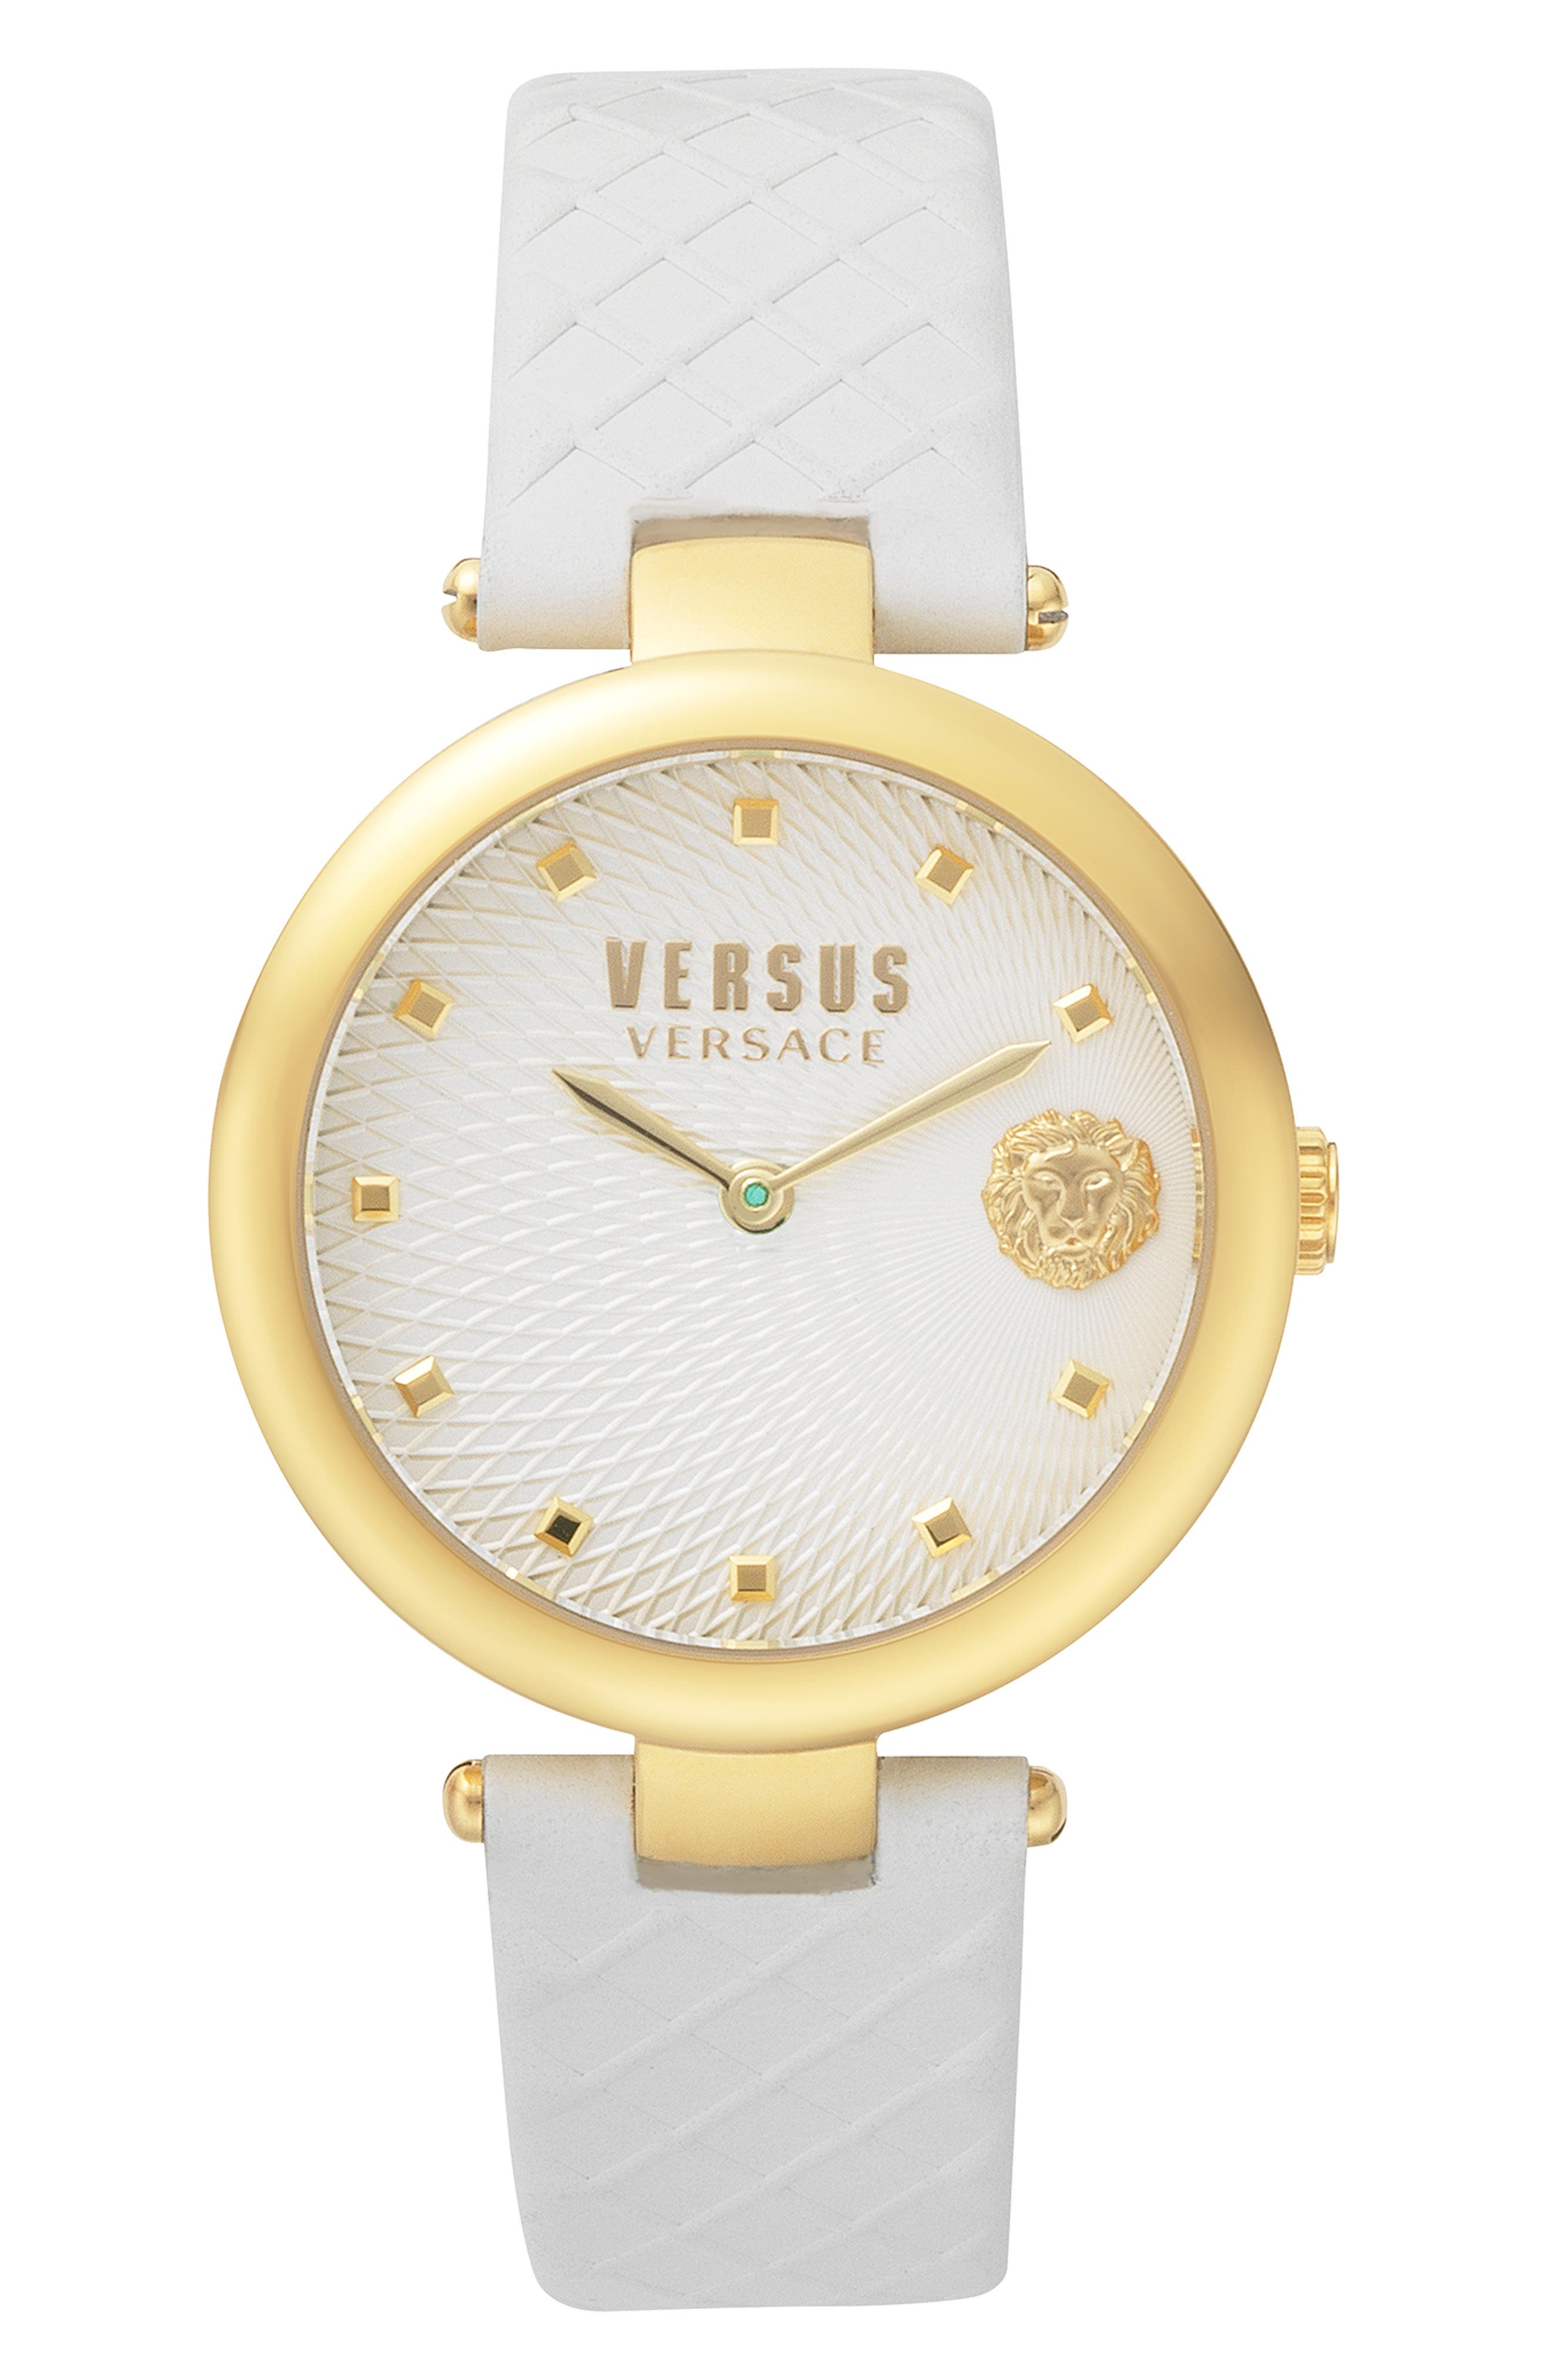 VERSUS VERSACE, Buffle Bay Leather Strap Watch, 36mm, Main thumbnail 1, color, WHITE/ GOLD